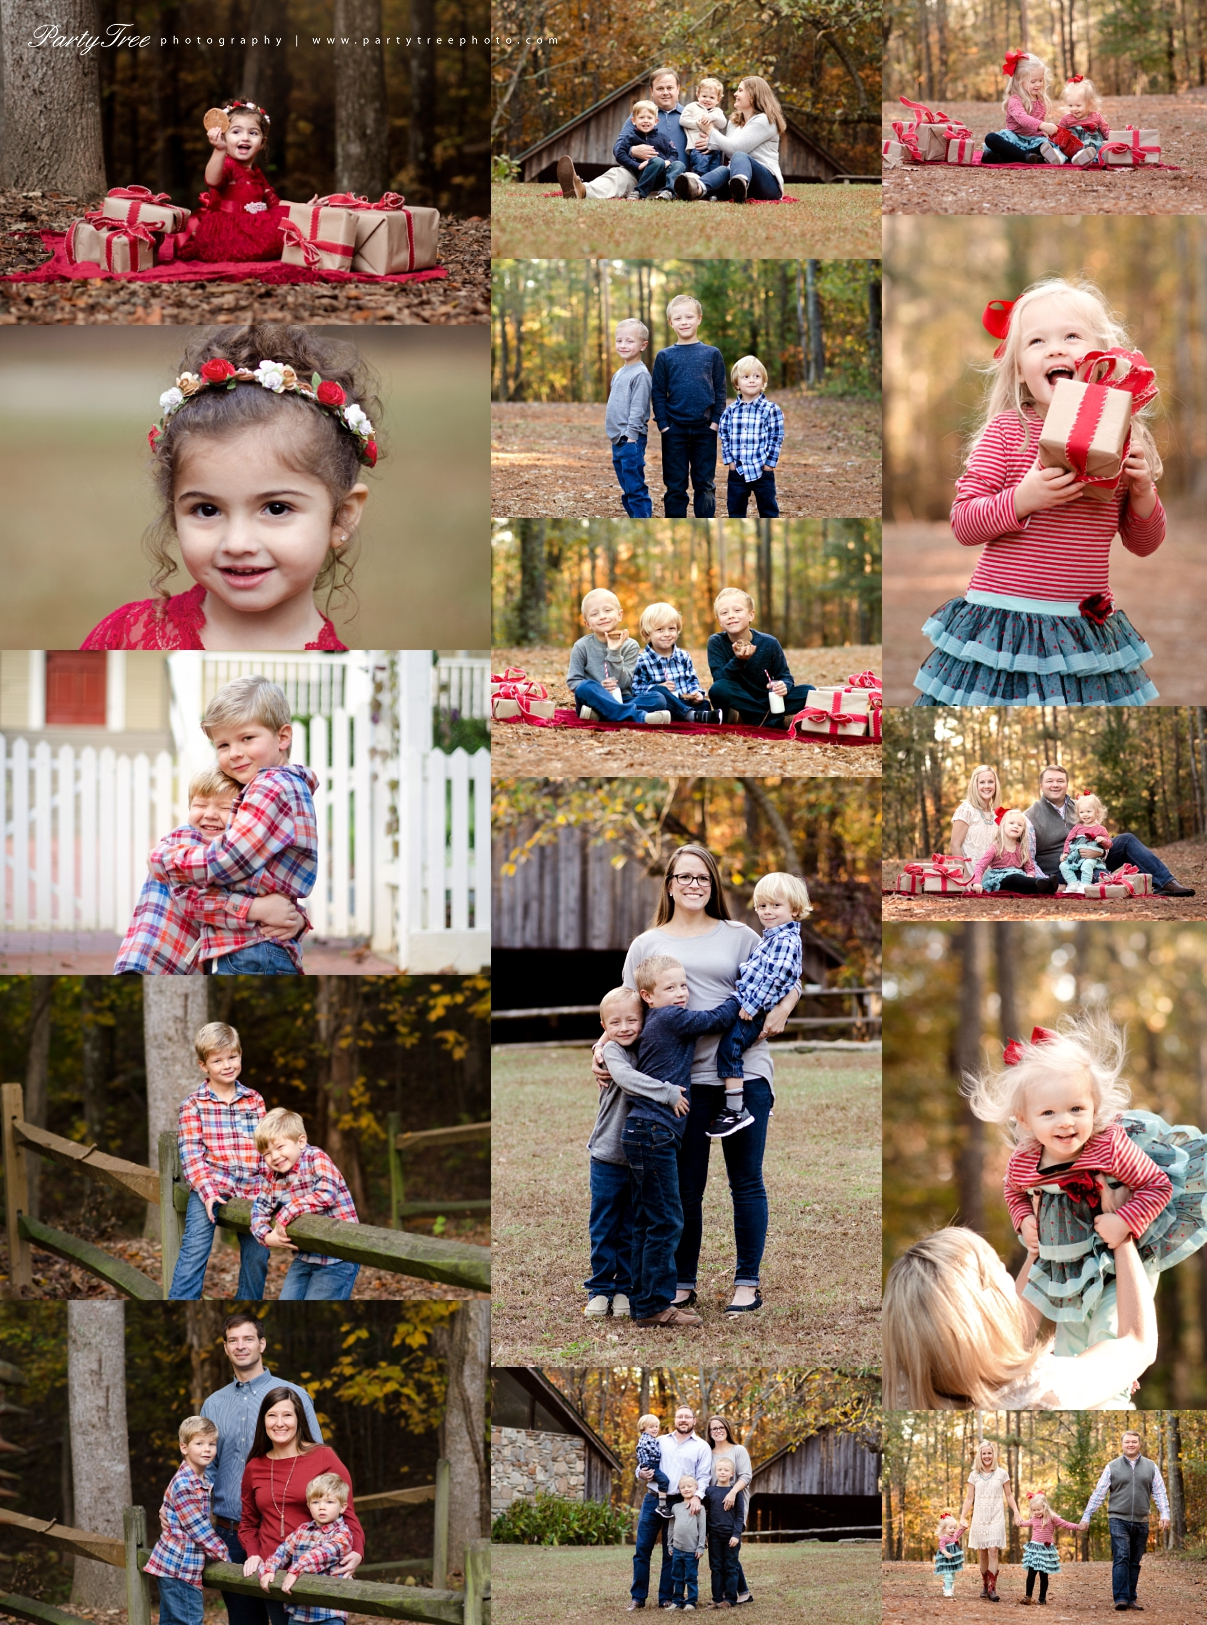 Johns Creek GA family photographer Christmas Mini Sessions Autrey Mill Nature Preserve Party Tree Photography